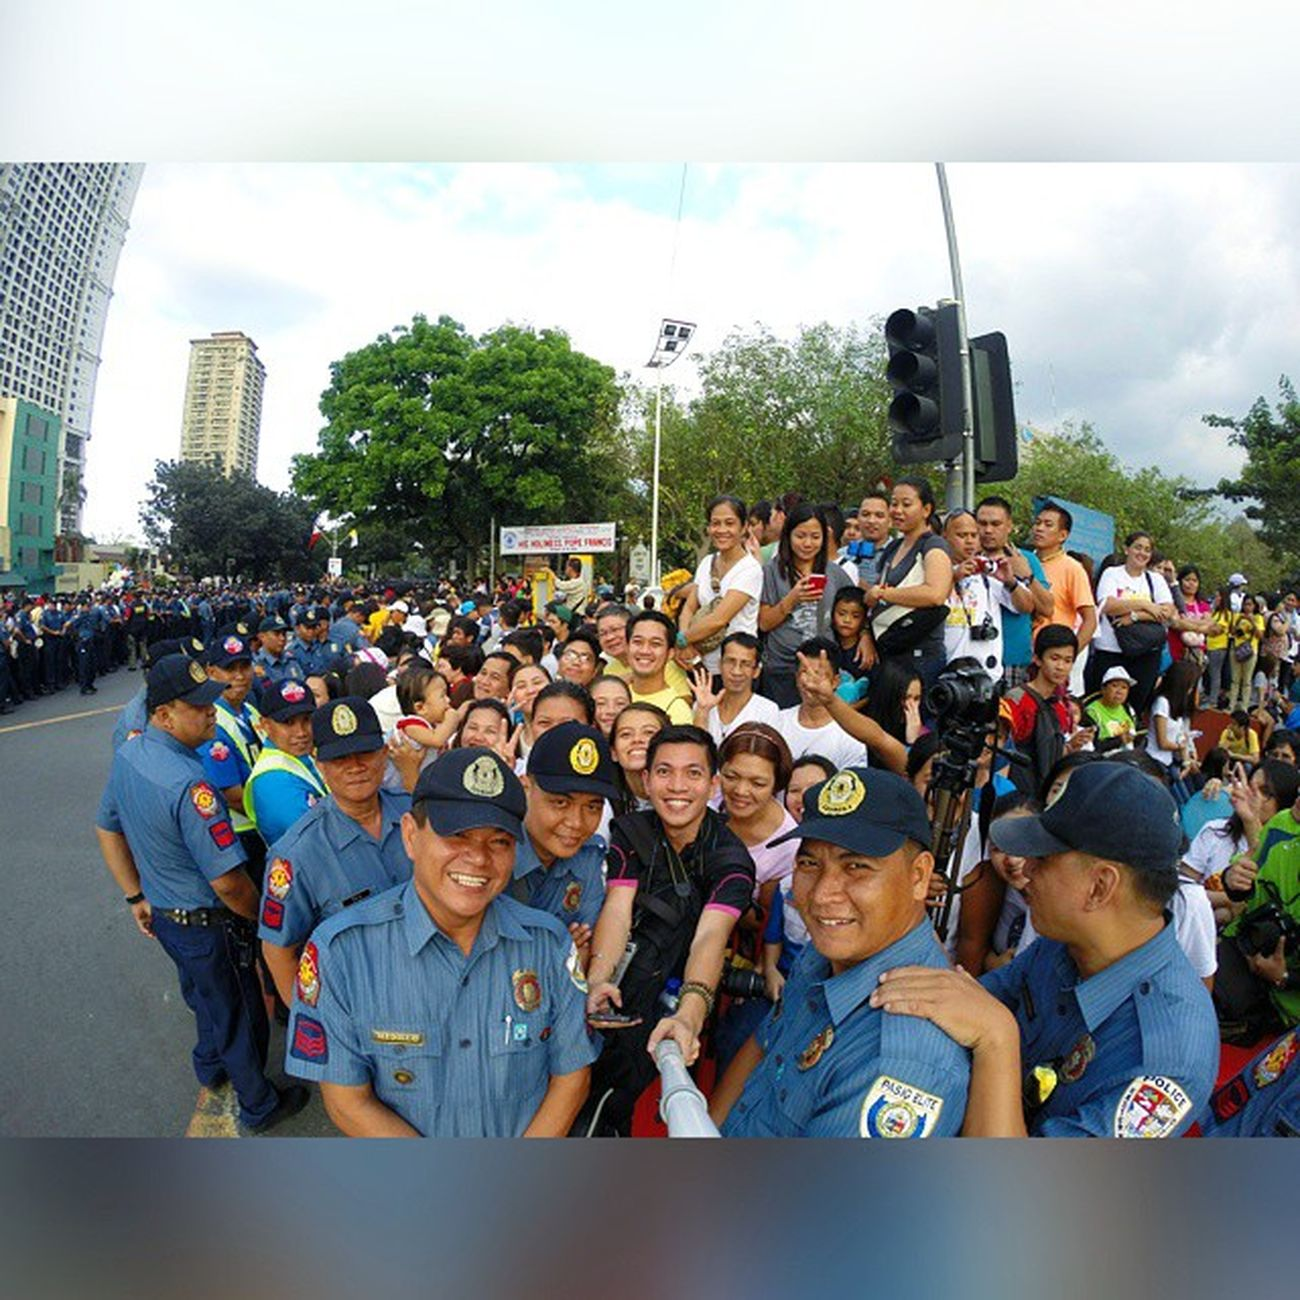 BlessedByThePope Pope Francis visited the Selfie capital of the world! 📷 PopeFrancisPh PopeTYSM WeLovePopeFrancis gopro goproph oscarselfie